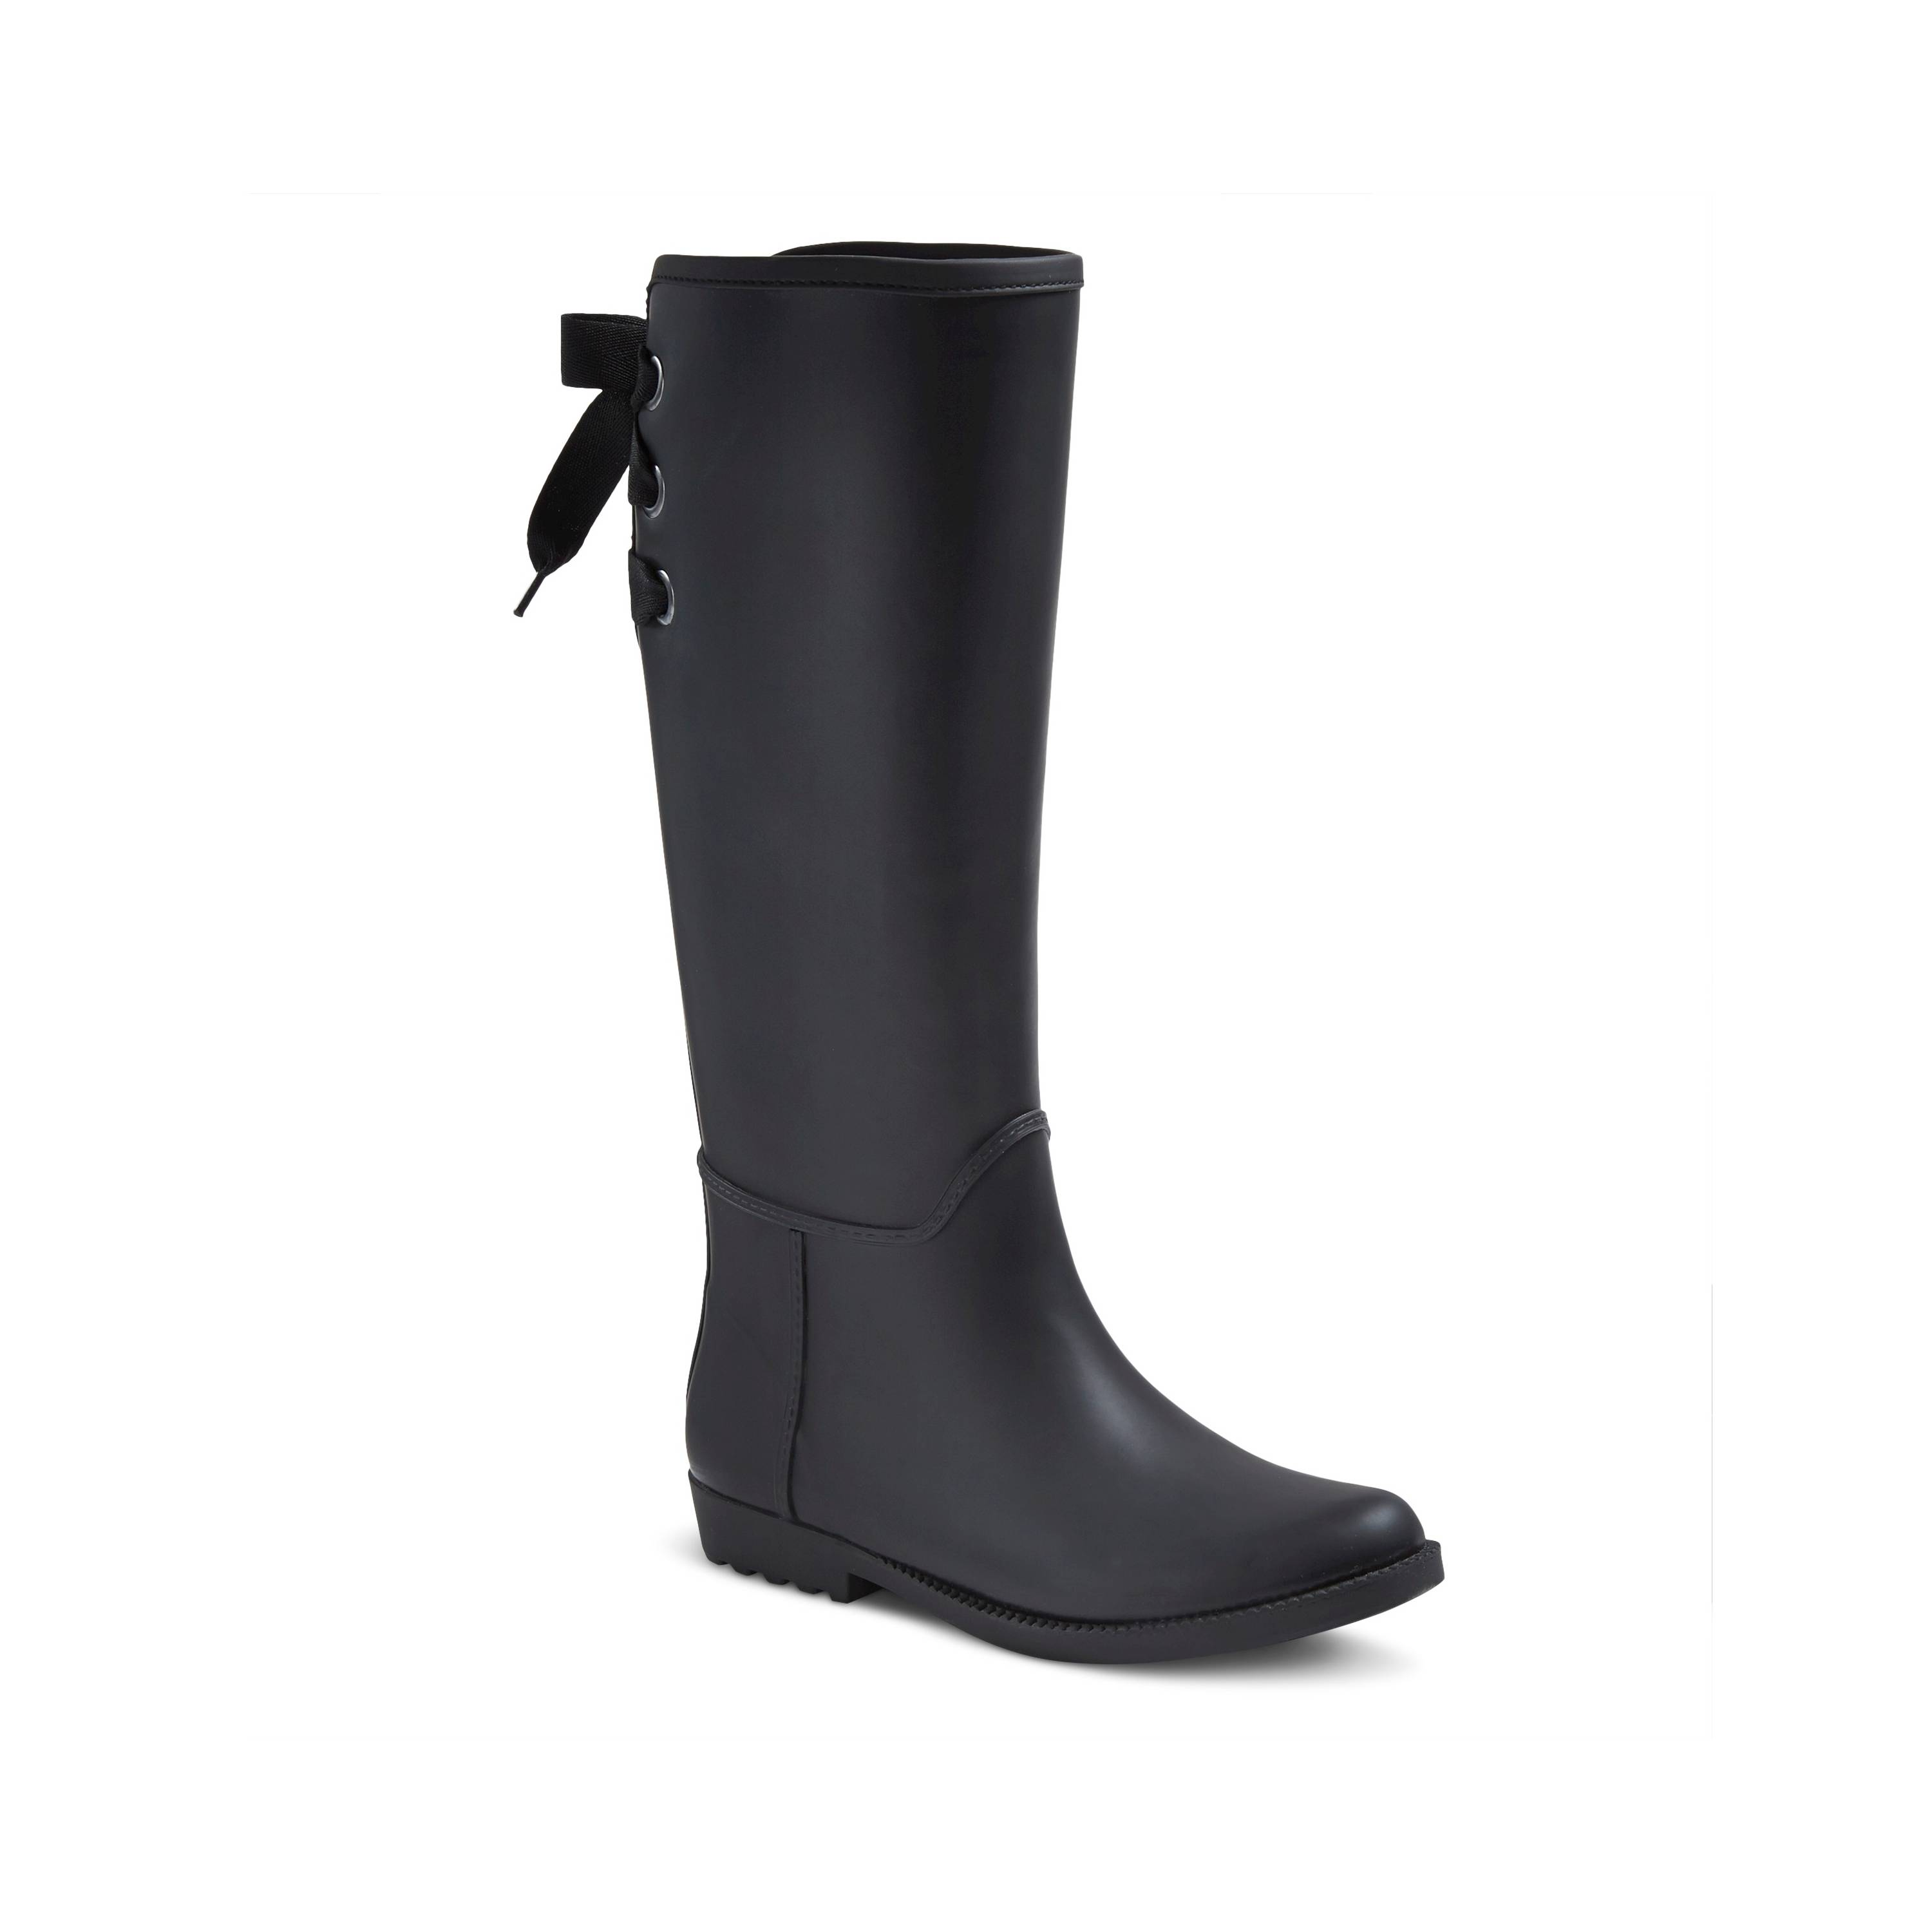 815da93b00d 11 Pairs of Stylish Rain Boots I m Obsessed with Right Now